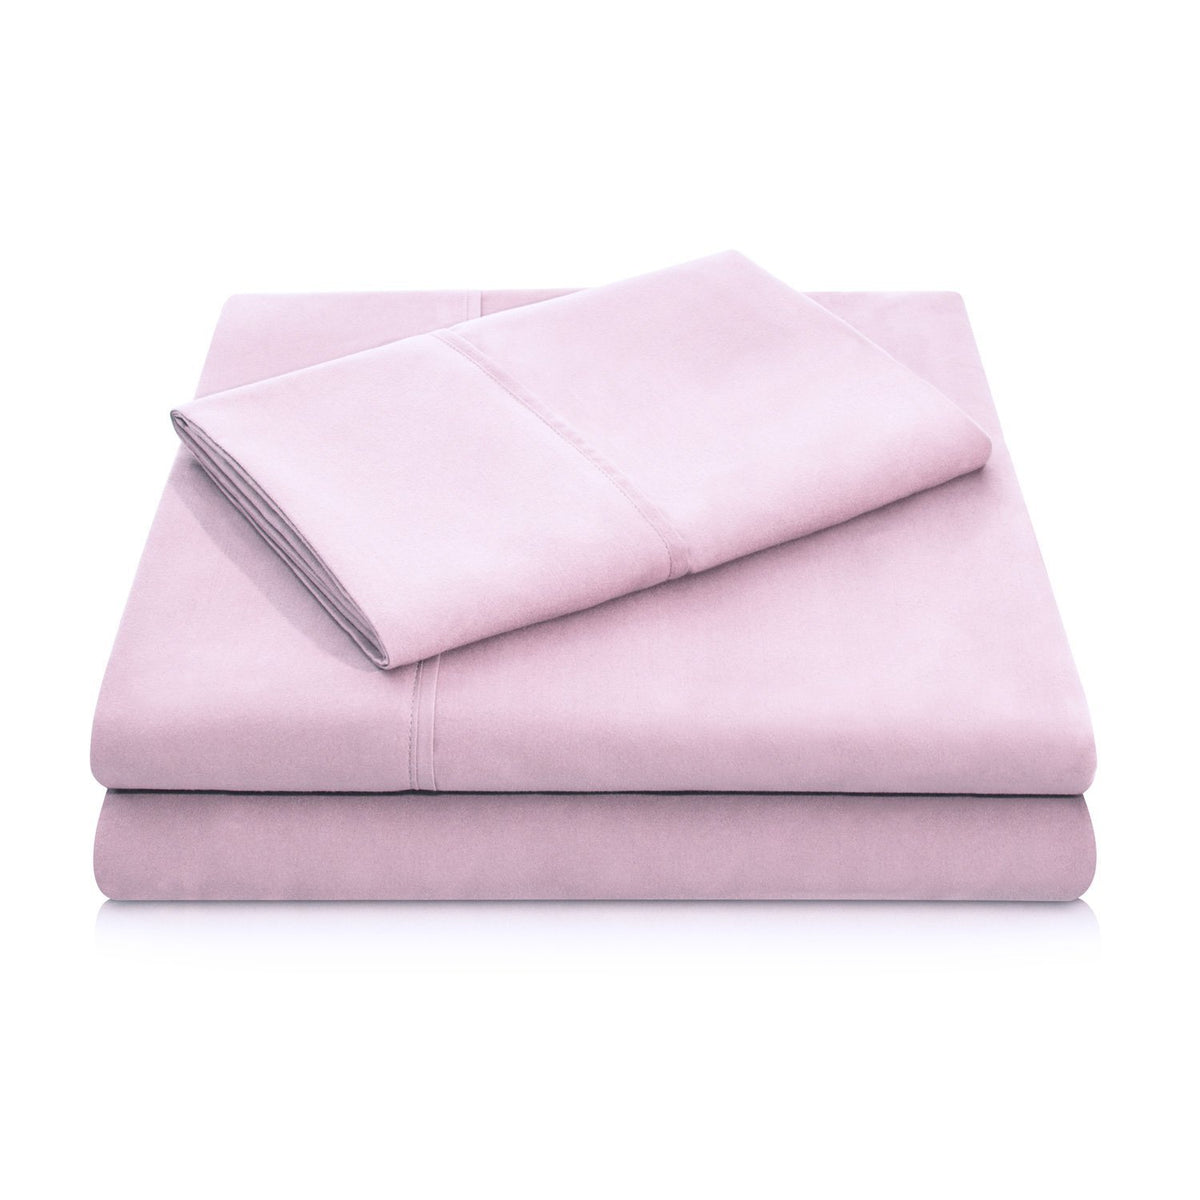 WOVEN Brushed Microfiber Sheet Set Sheet Set Malouf Twin Blush